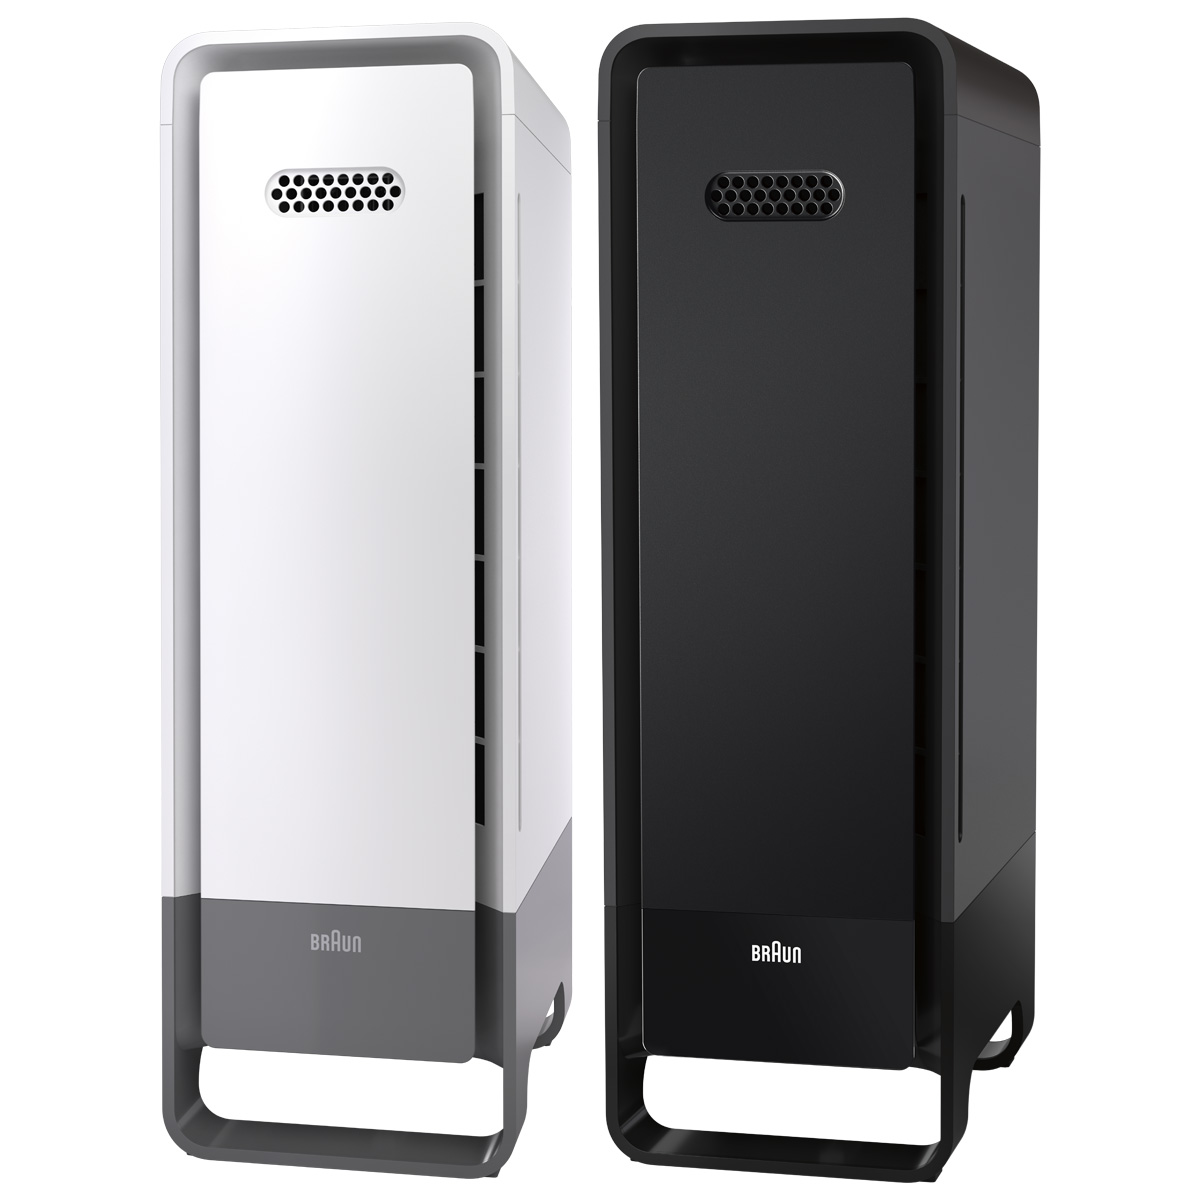 Braun SensorAir™ Air Purifiers